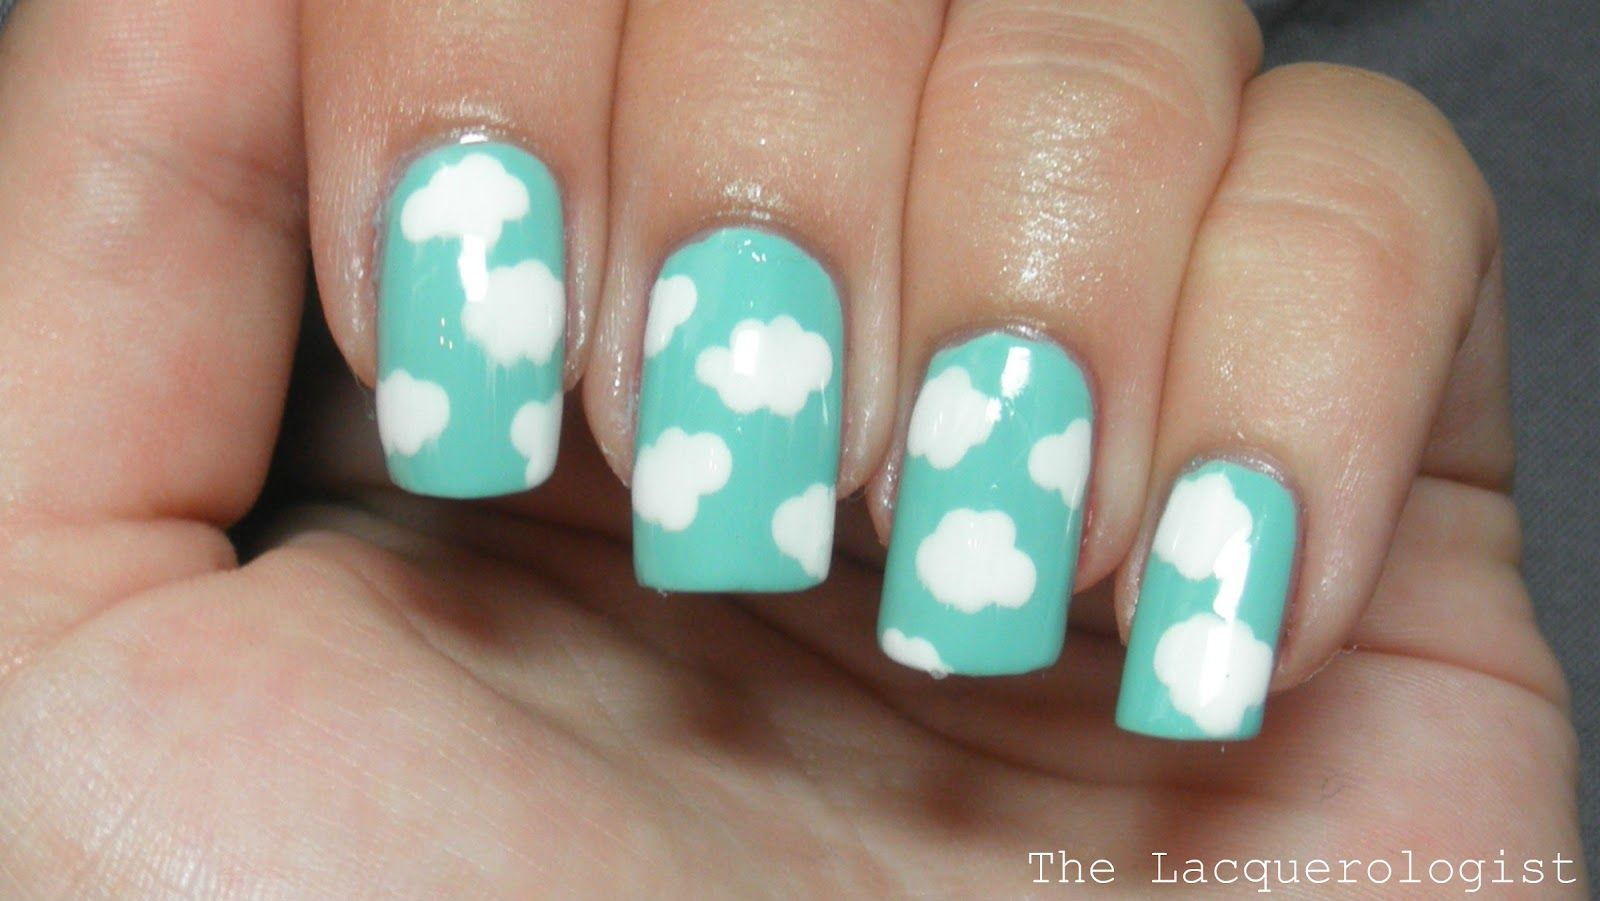 The lacquerologist cloud simple nail art tutorial nails